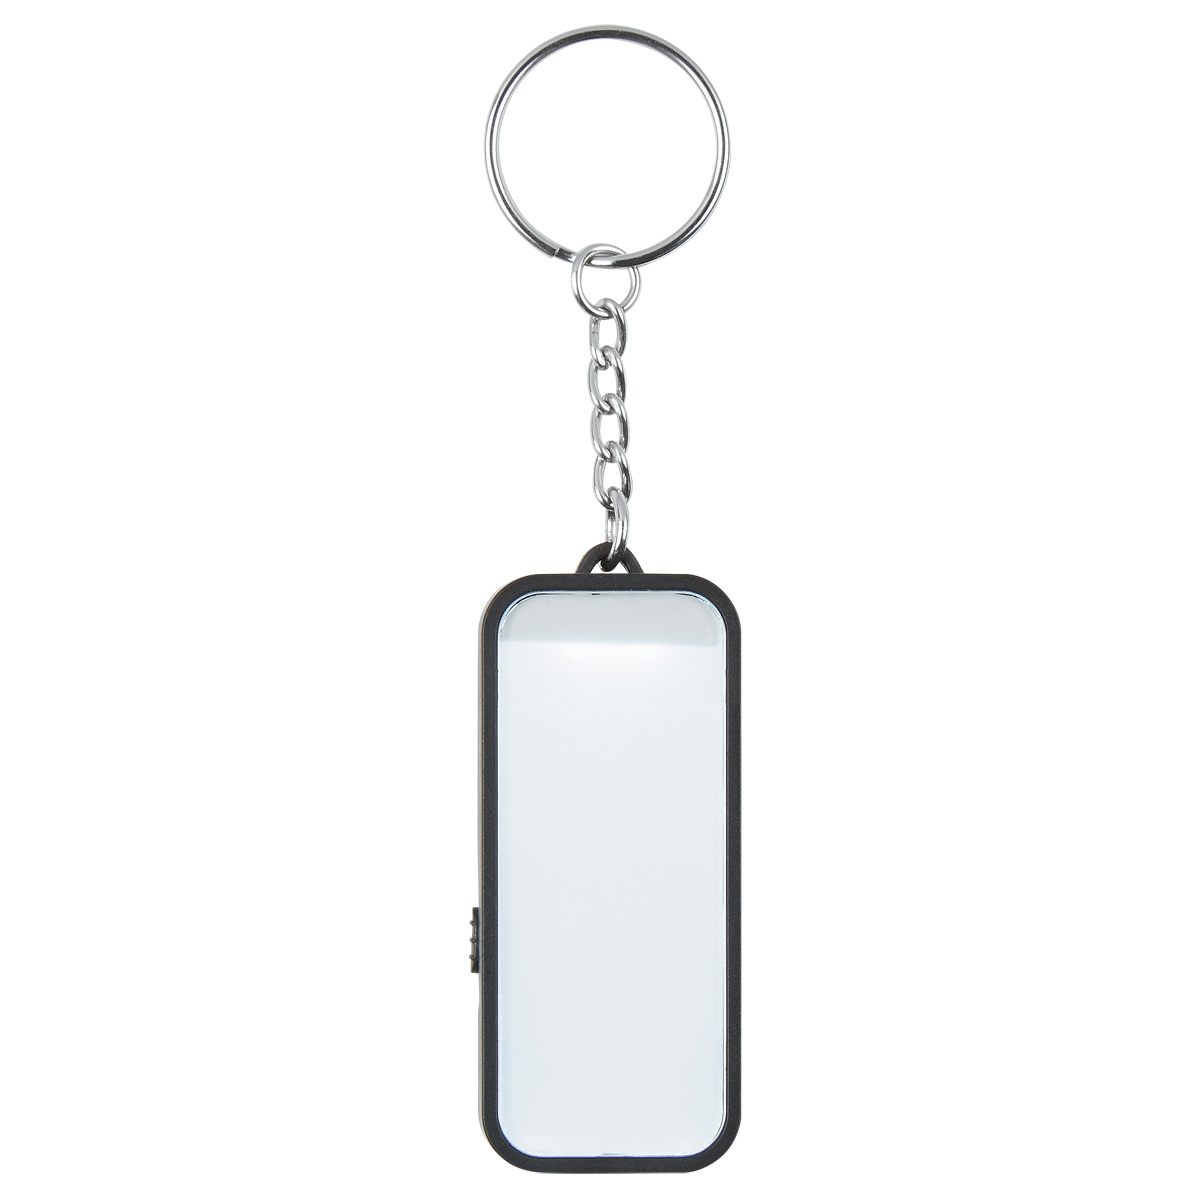 173 Led Faceplate Key Chain